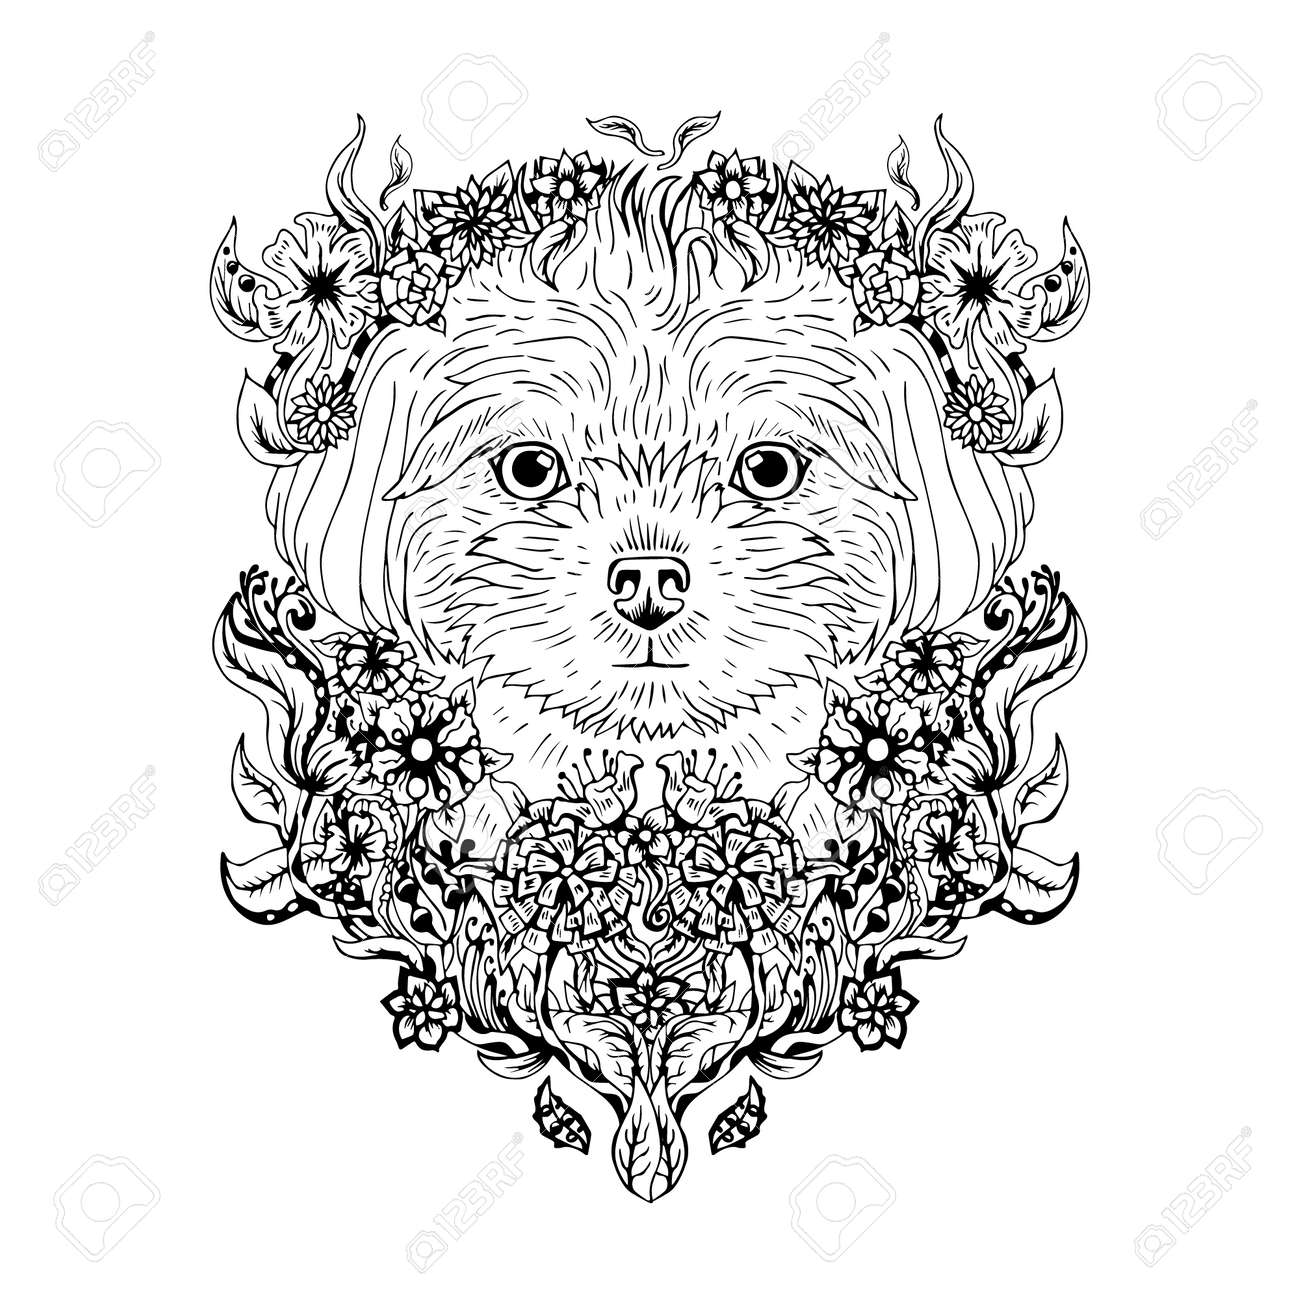 Black And White Animal Dog Head Abstract Art Tattoo Doodle